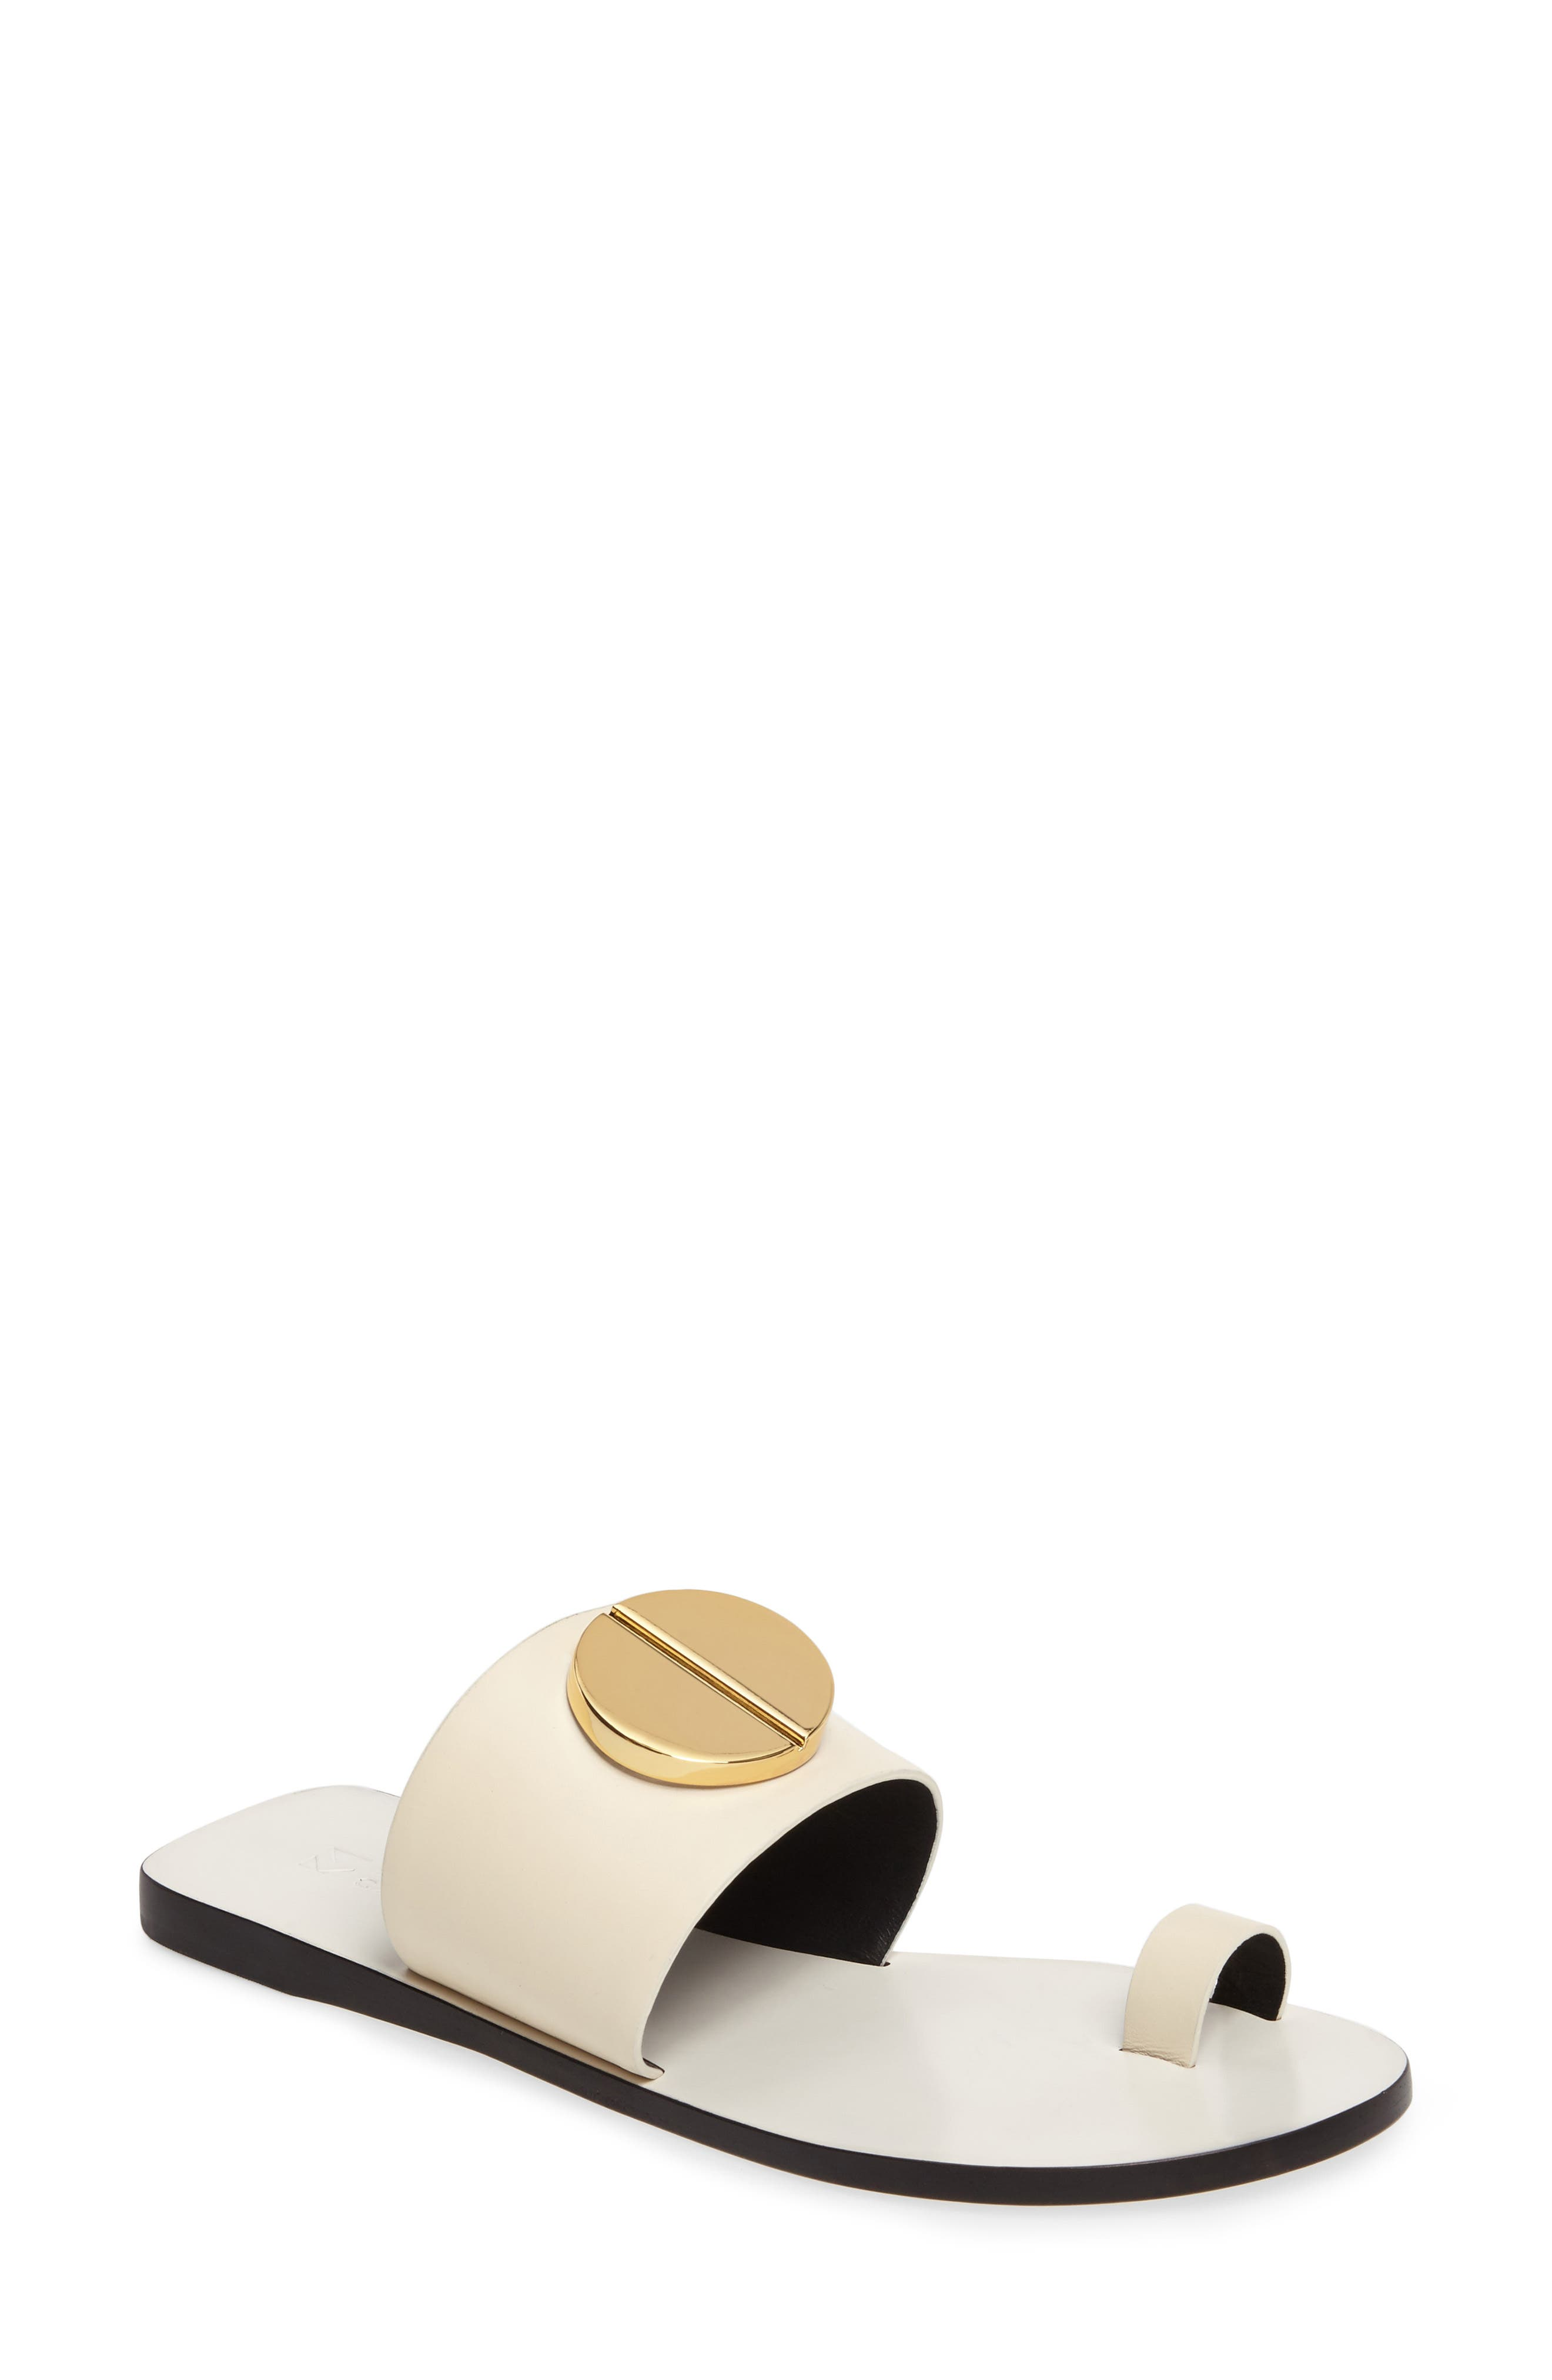 Alternate Image 1 Selected - Mercedes Castillo Fallon Toe-Loop Sandal (Women)